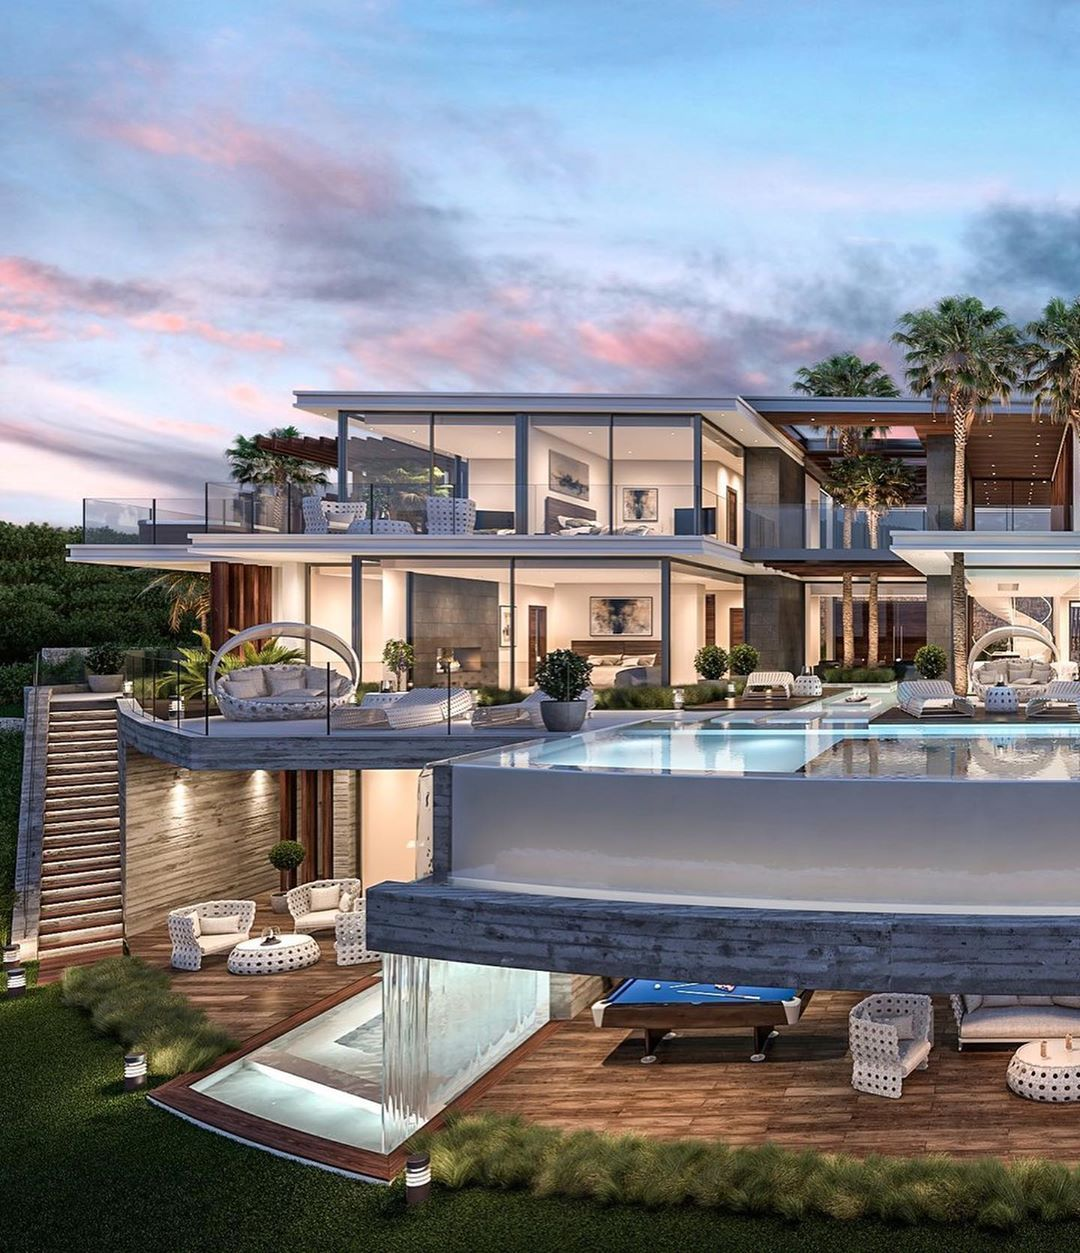 Houses On Instagram Listed By Masproperty Marbella 7 Bedroom 9 Bathroom Villa For Sale In L Luxury Homes Dream Houses Luxury Houses Mansions Mansions